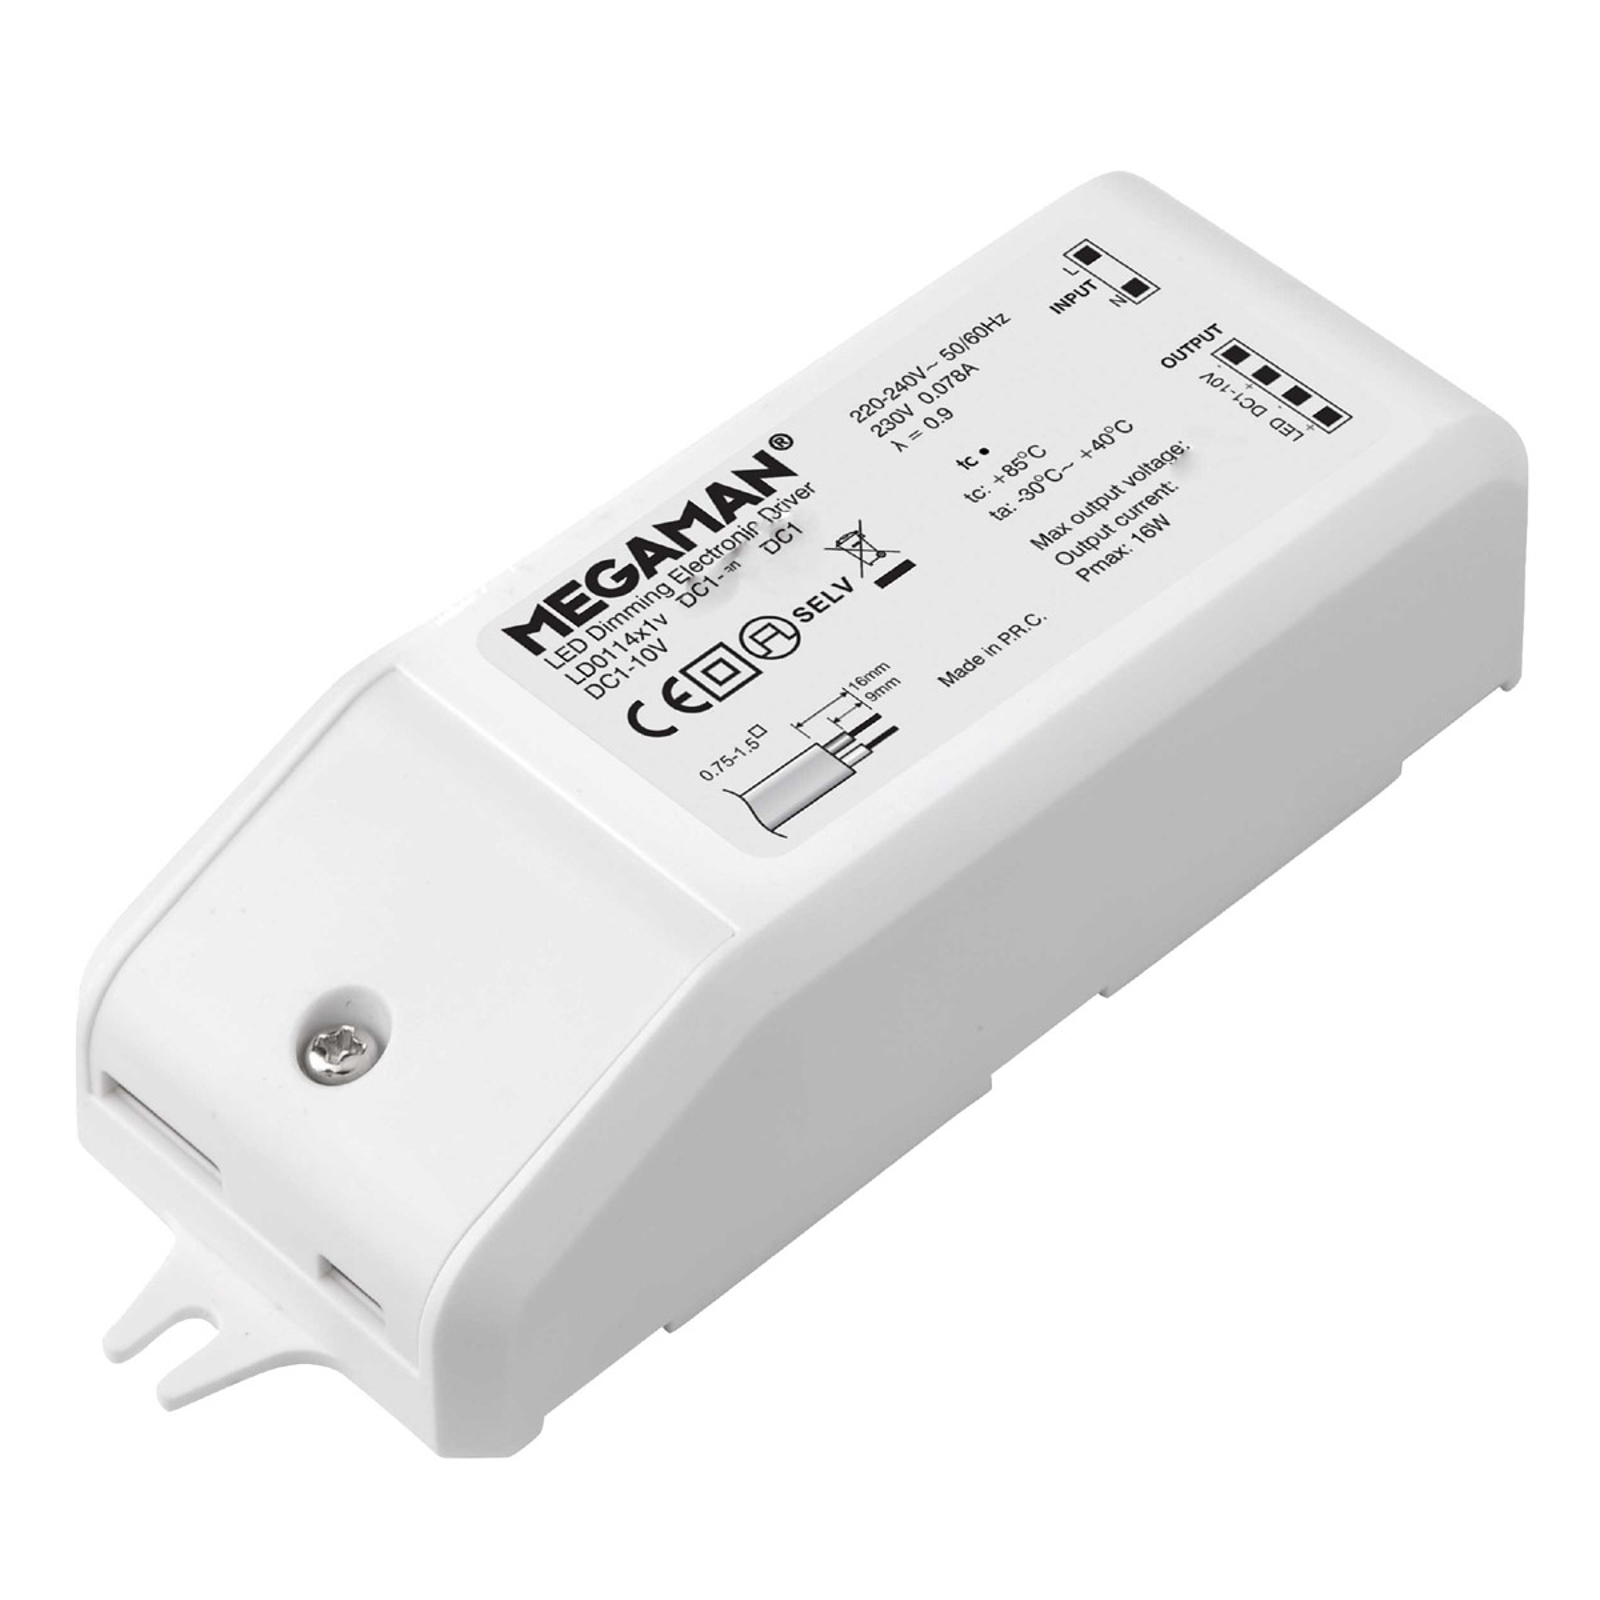 electronic driver DC 1-10 V 10W, dimmable_6530214_1